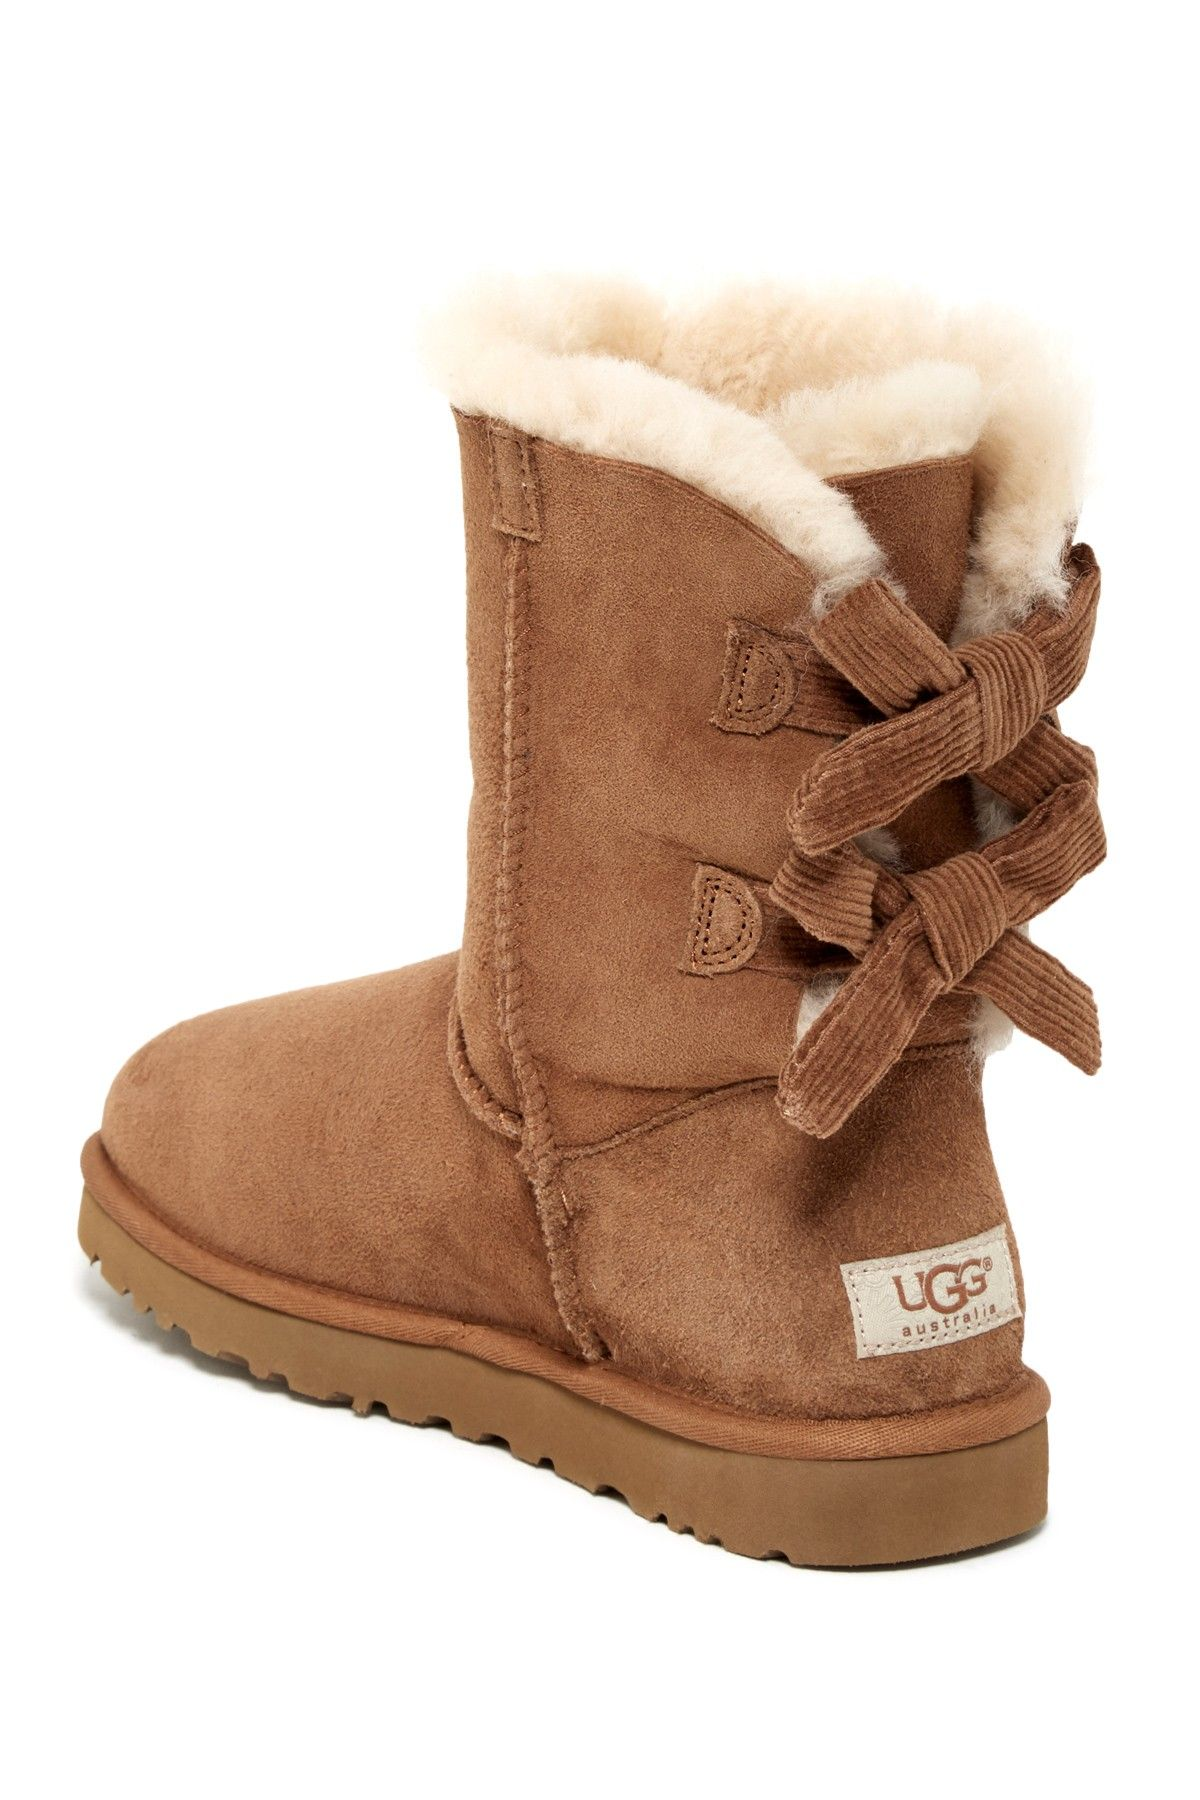 ugg shoes at nordstrom